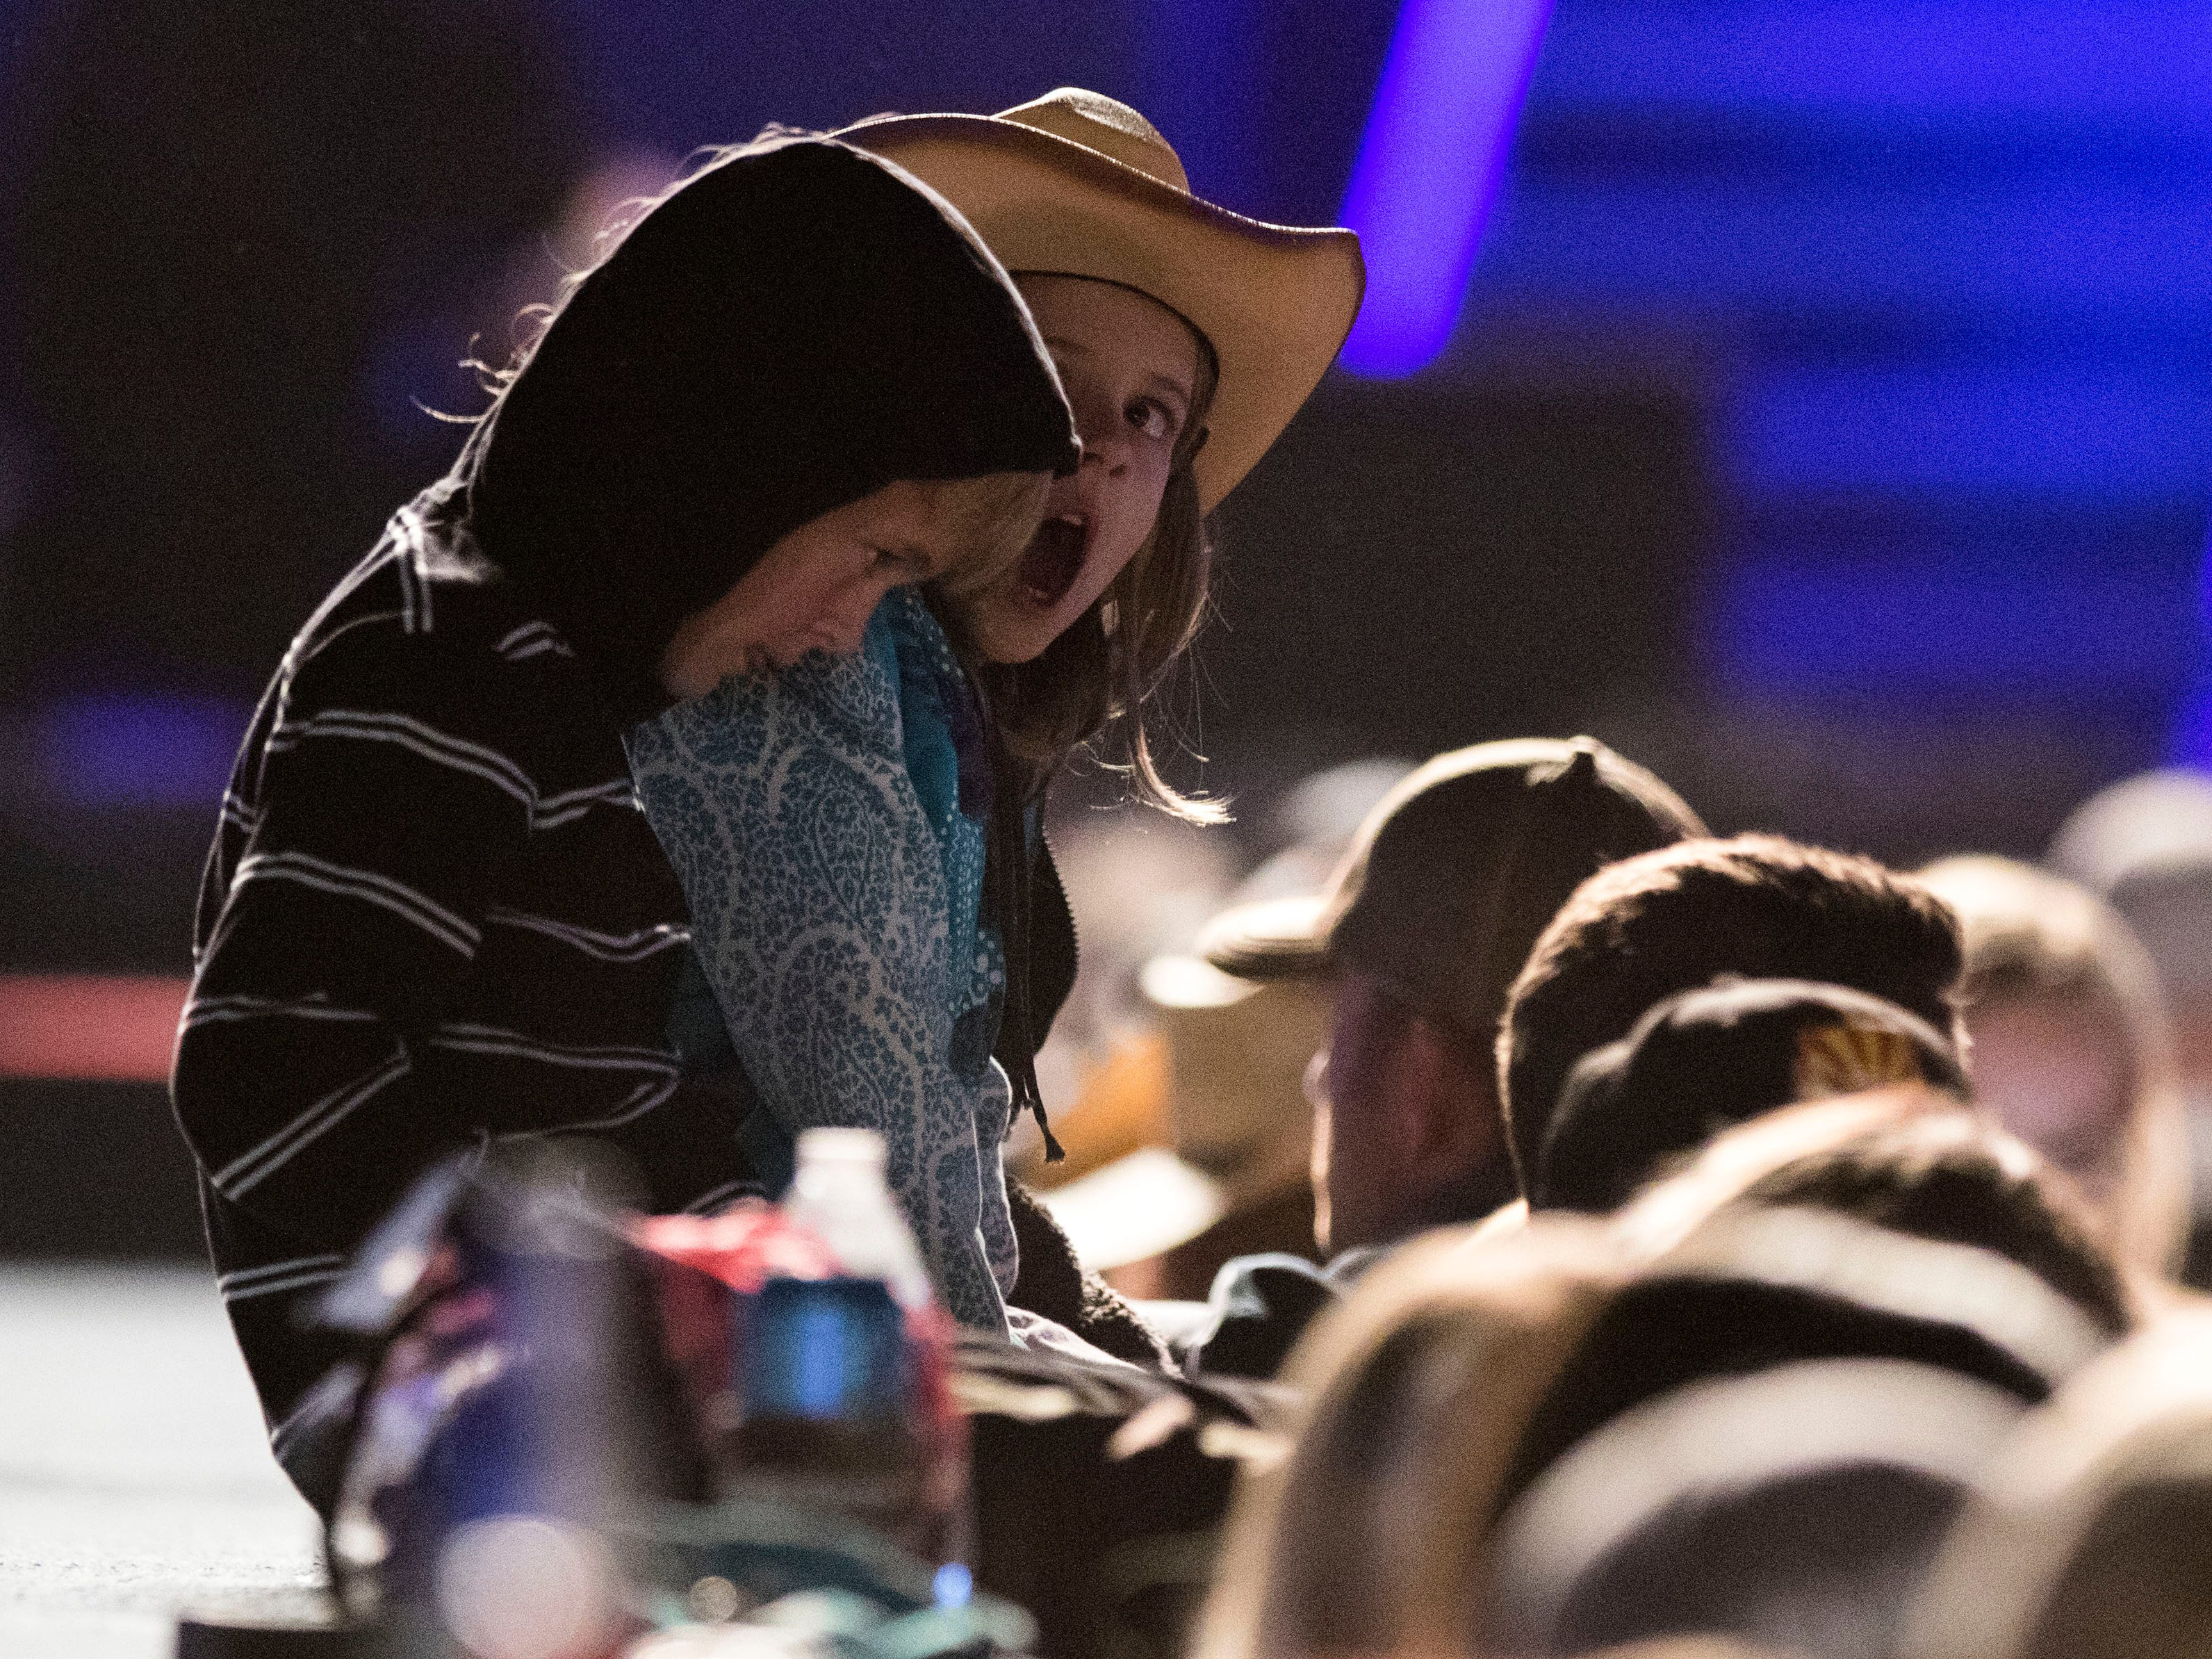 A couple of tired little music lovers wait for Brett Eldredge the last act of the night during Country Thunder Arizona Thursday, April 11, 2019, in Florence, Ariz.